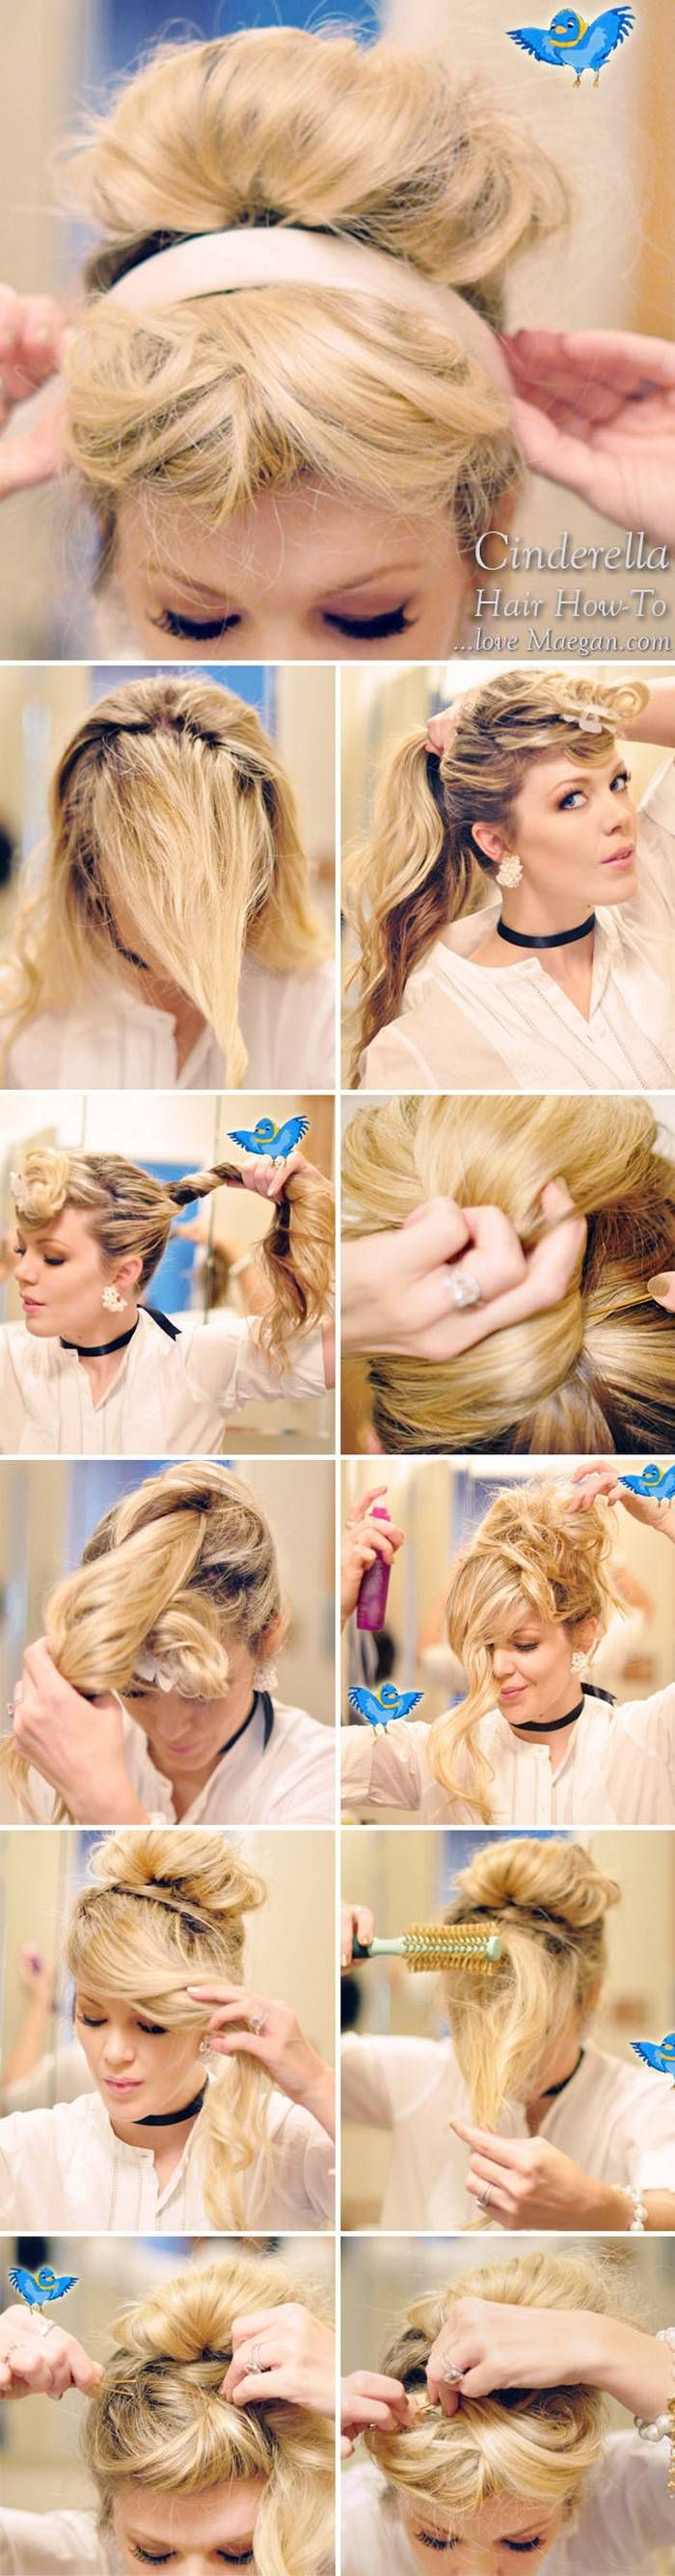 Cinderella Top 10 Romantic Hairstyle Tutorials for Valentine's Day